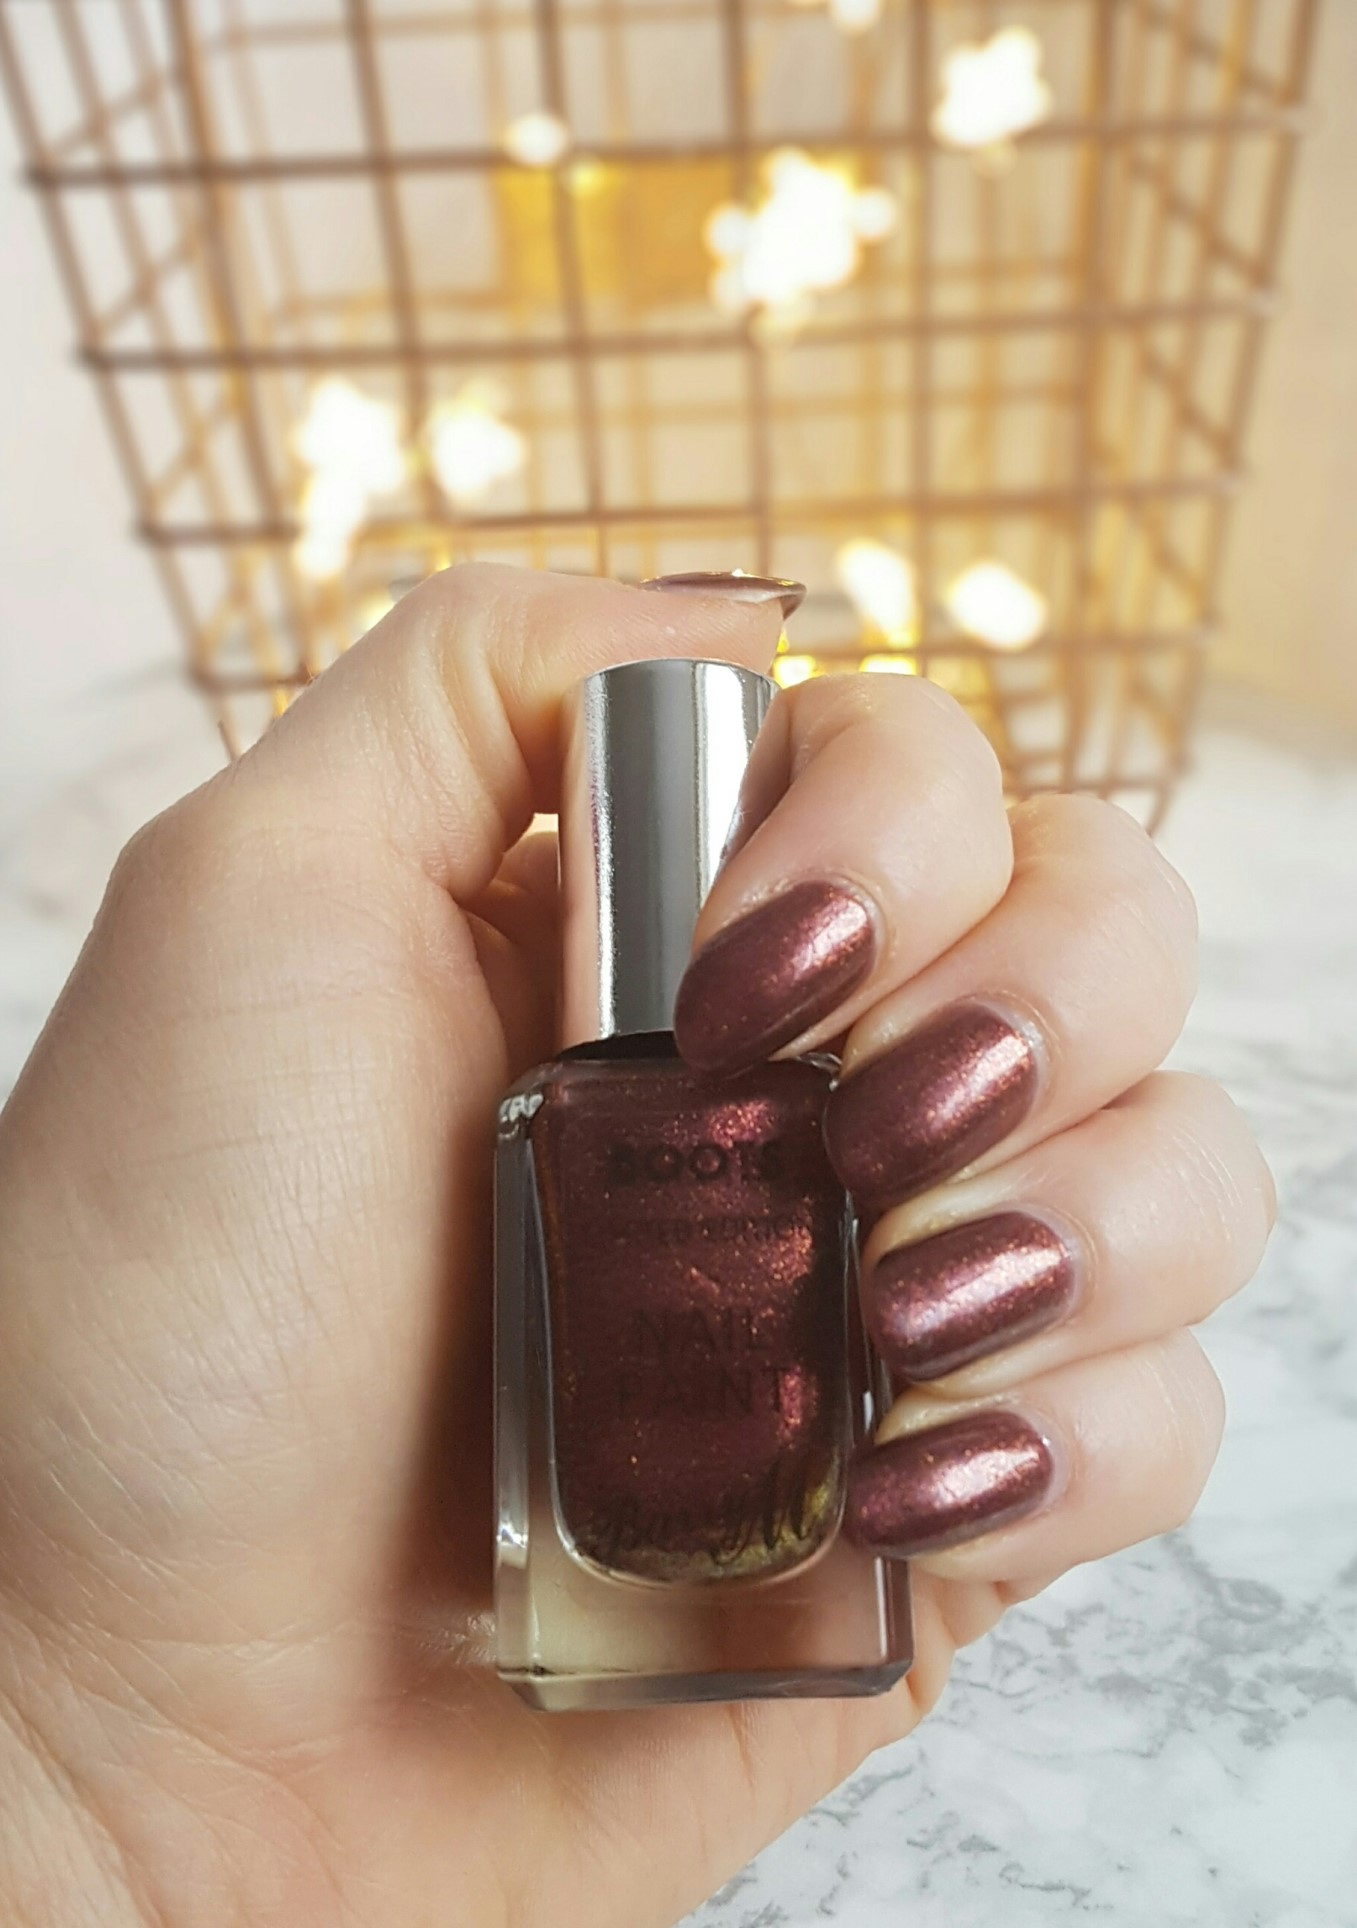 boots-barry-m-limited-edition-nail-varnish-enchanted-2